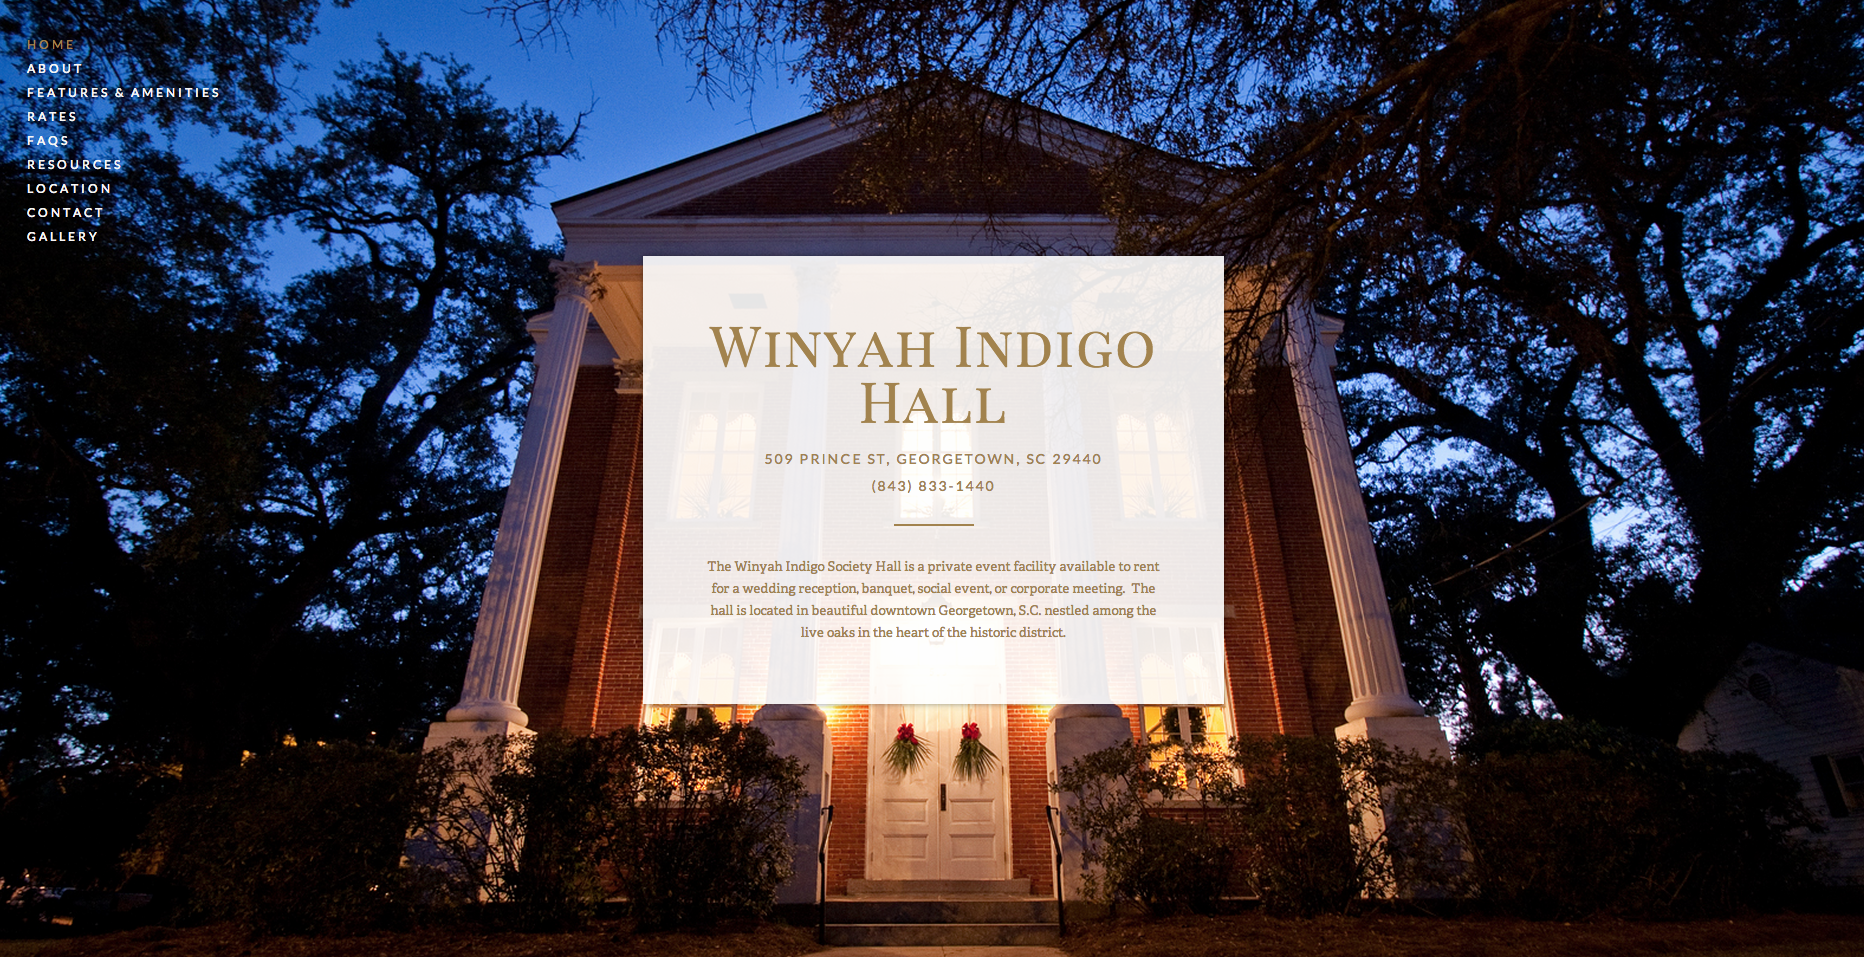 Winyah Indigo Society Hall